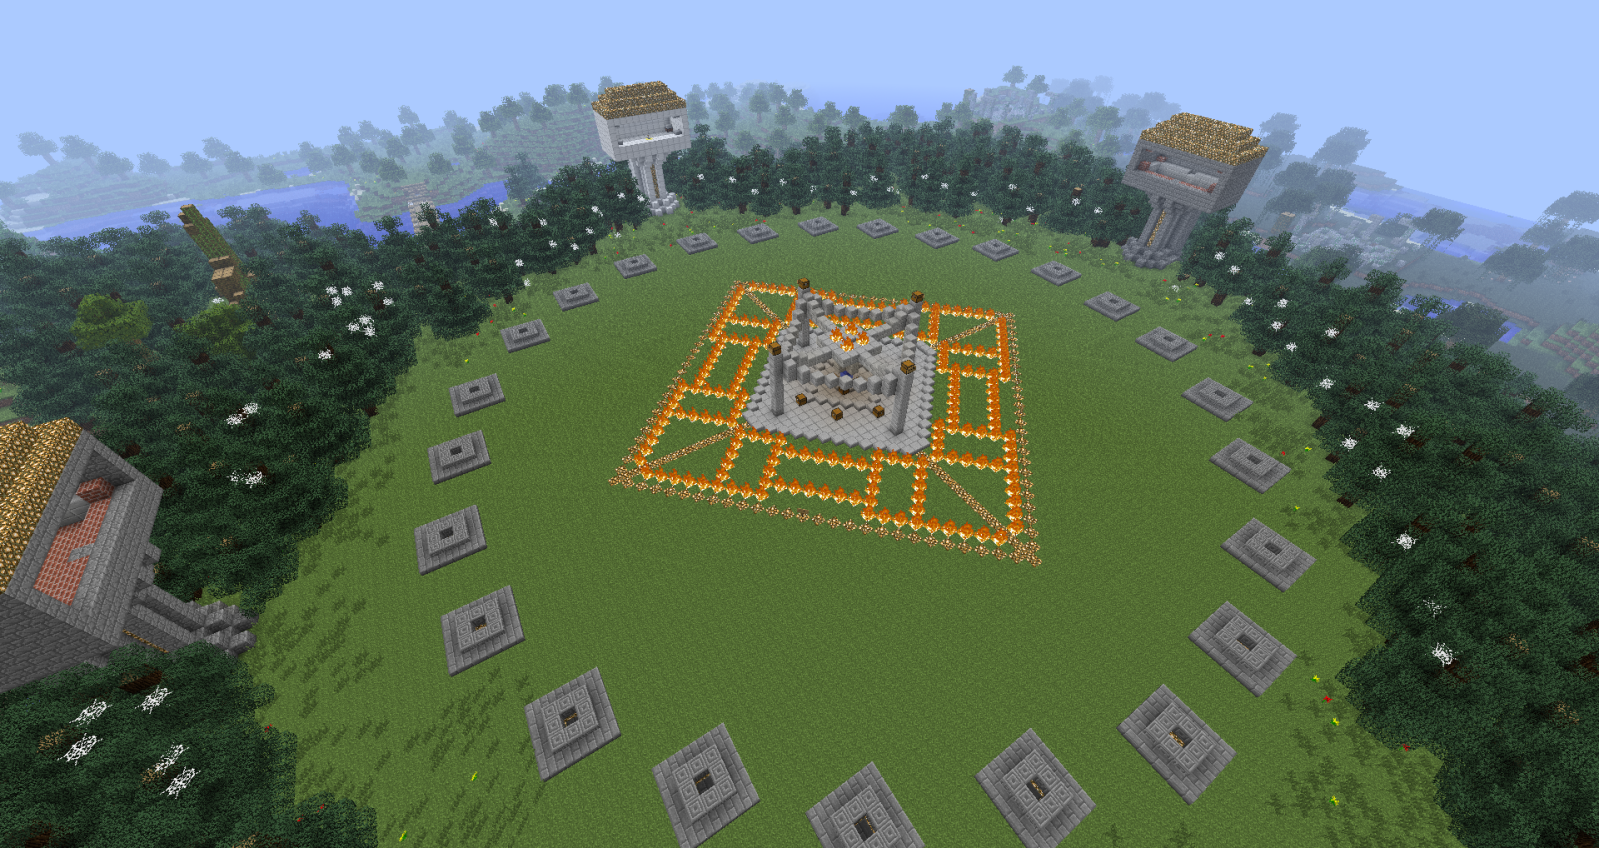 minecraft hunger games maps PvP/Surv] [4,000+ DLs] The